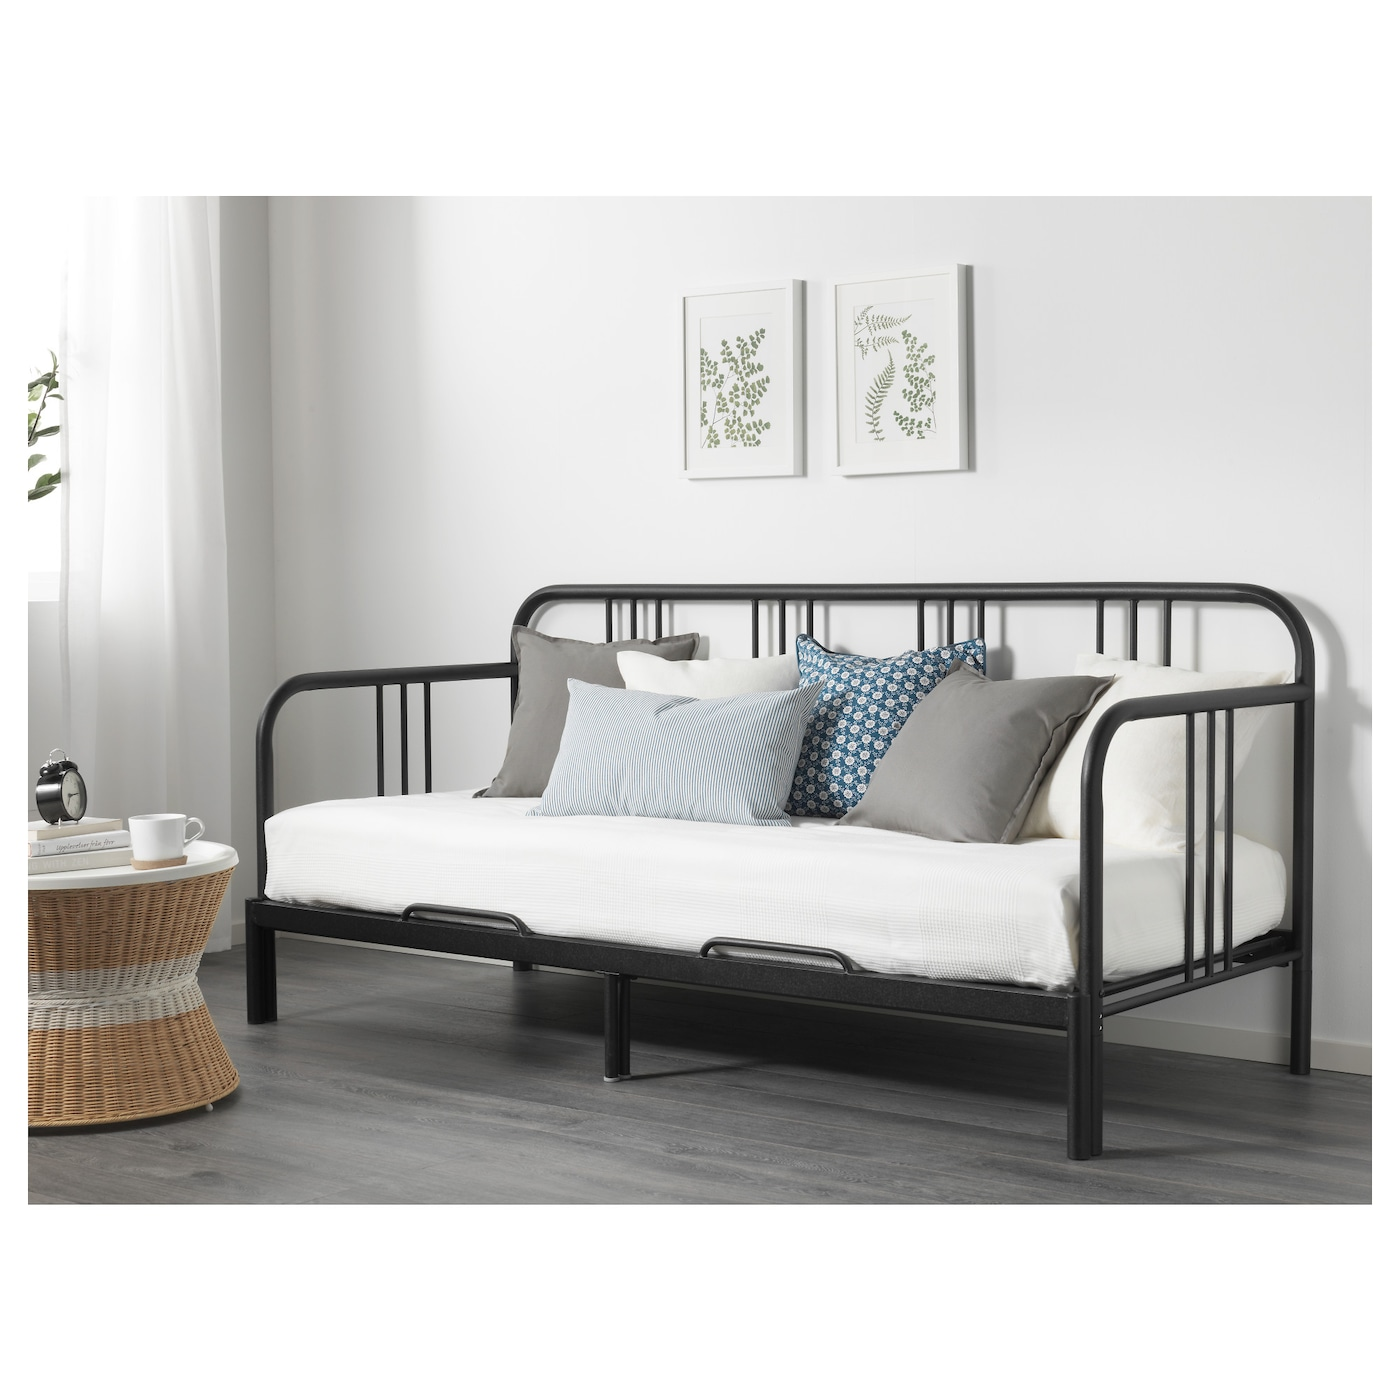 Fyresdal day bed frame black 80x200 cm ikea for Ikea day bed